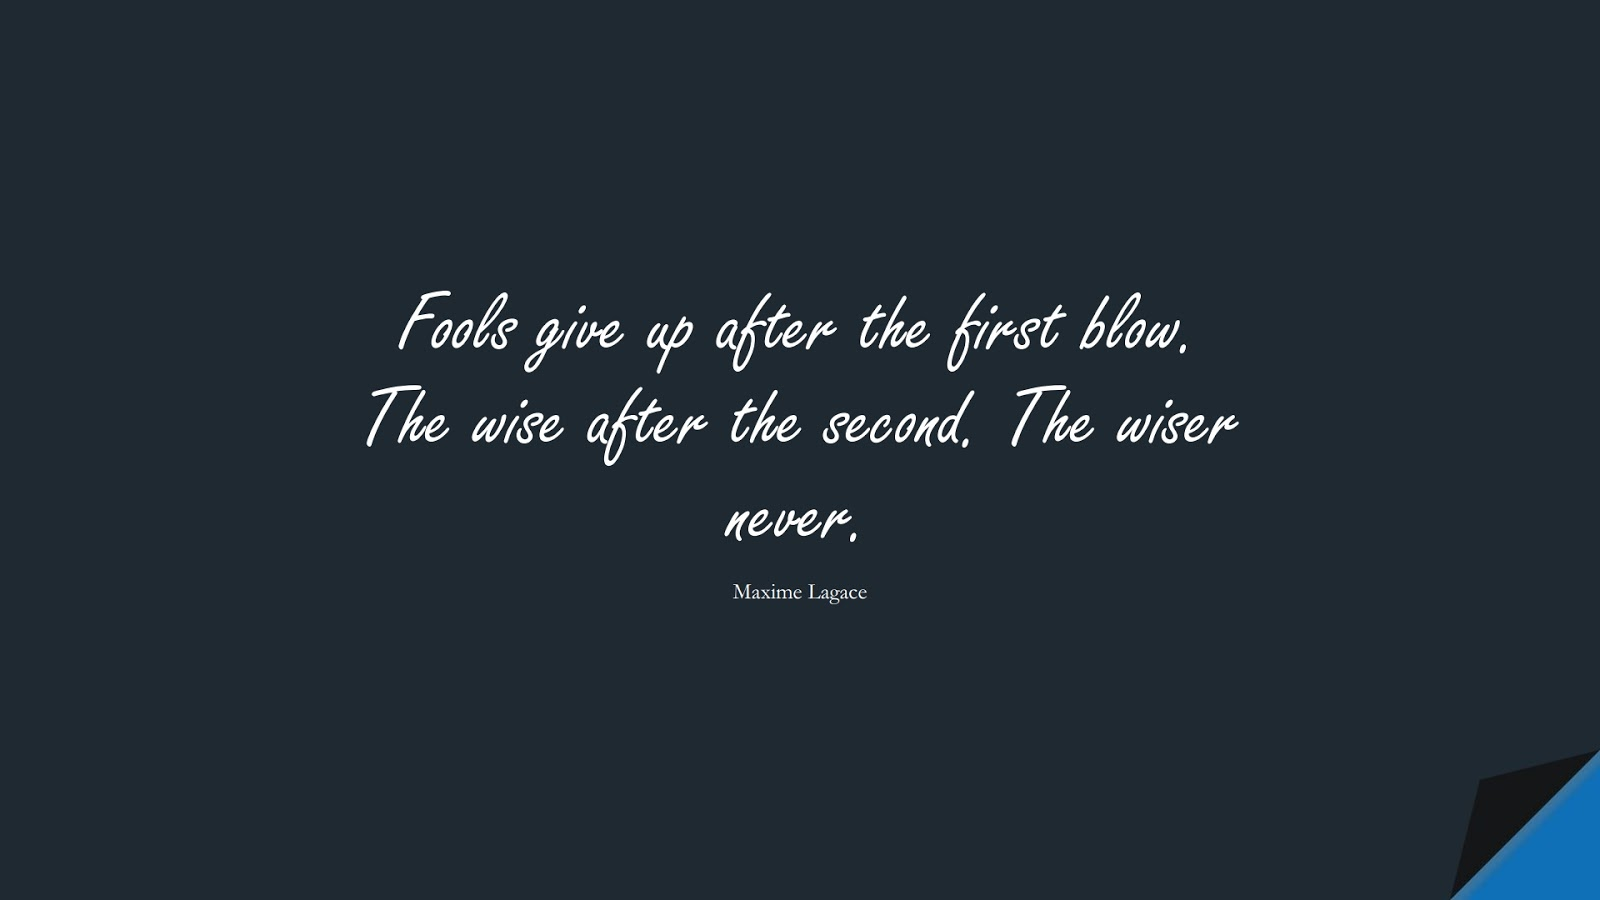 Fools give up after the first blow. The wise after the second. The wiser never. (Maxime Lagace);  #HopeQuotes